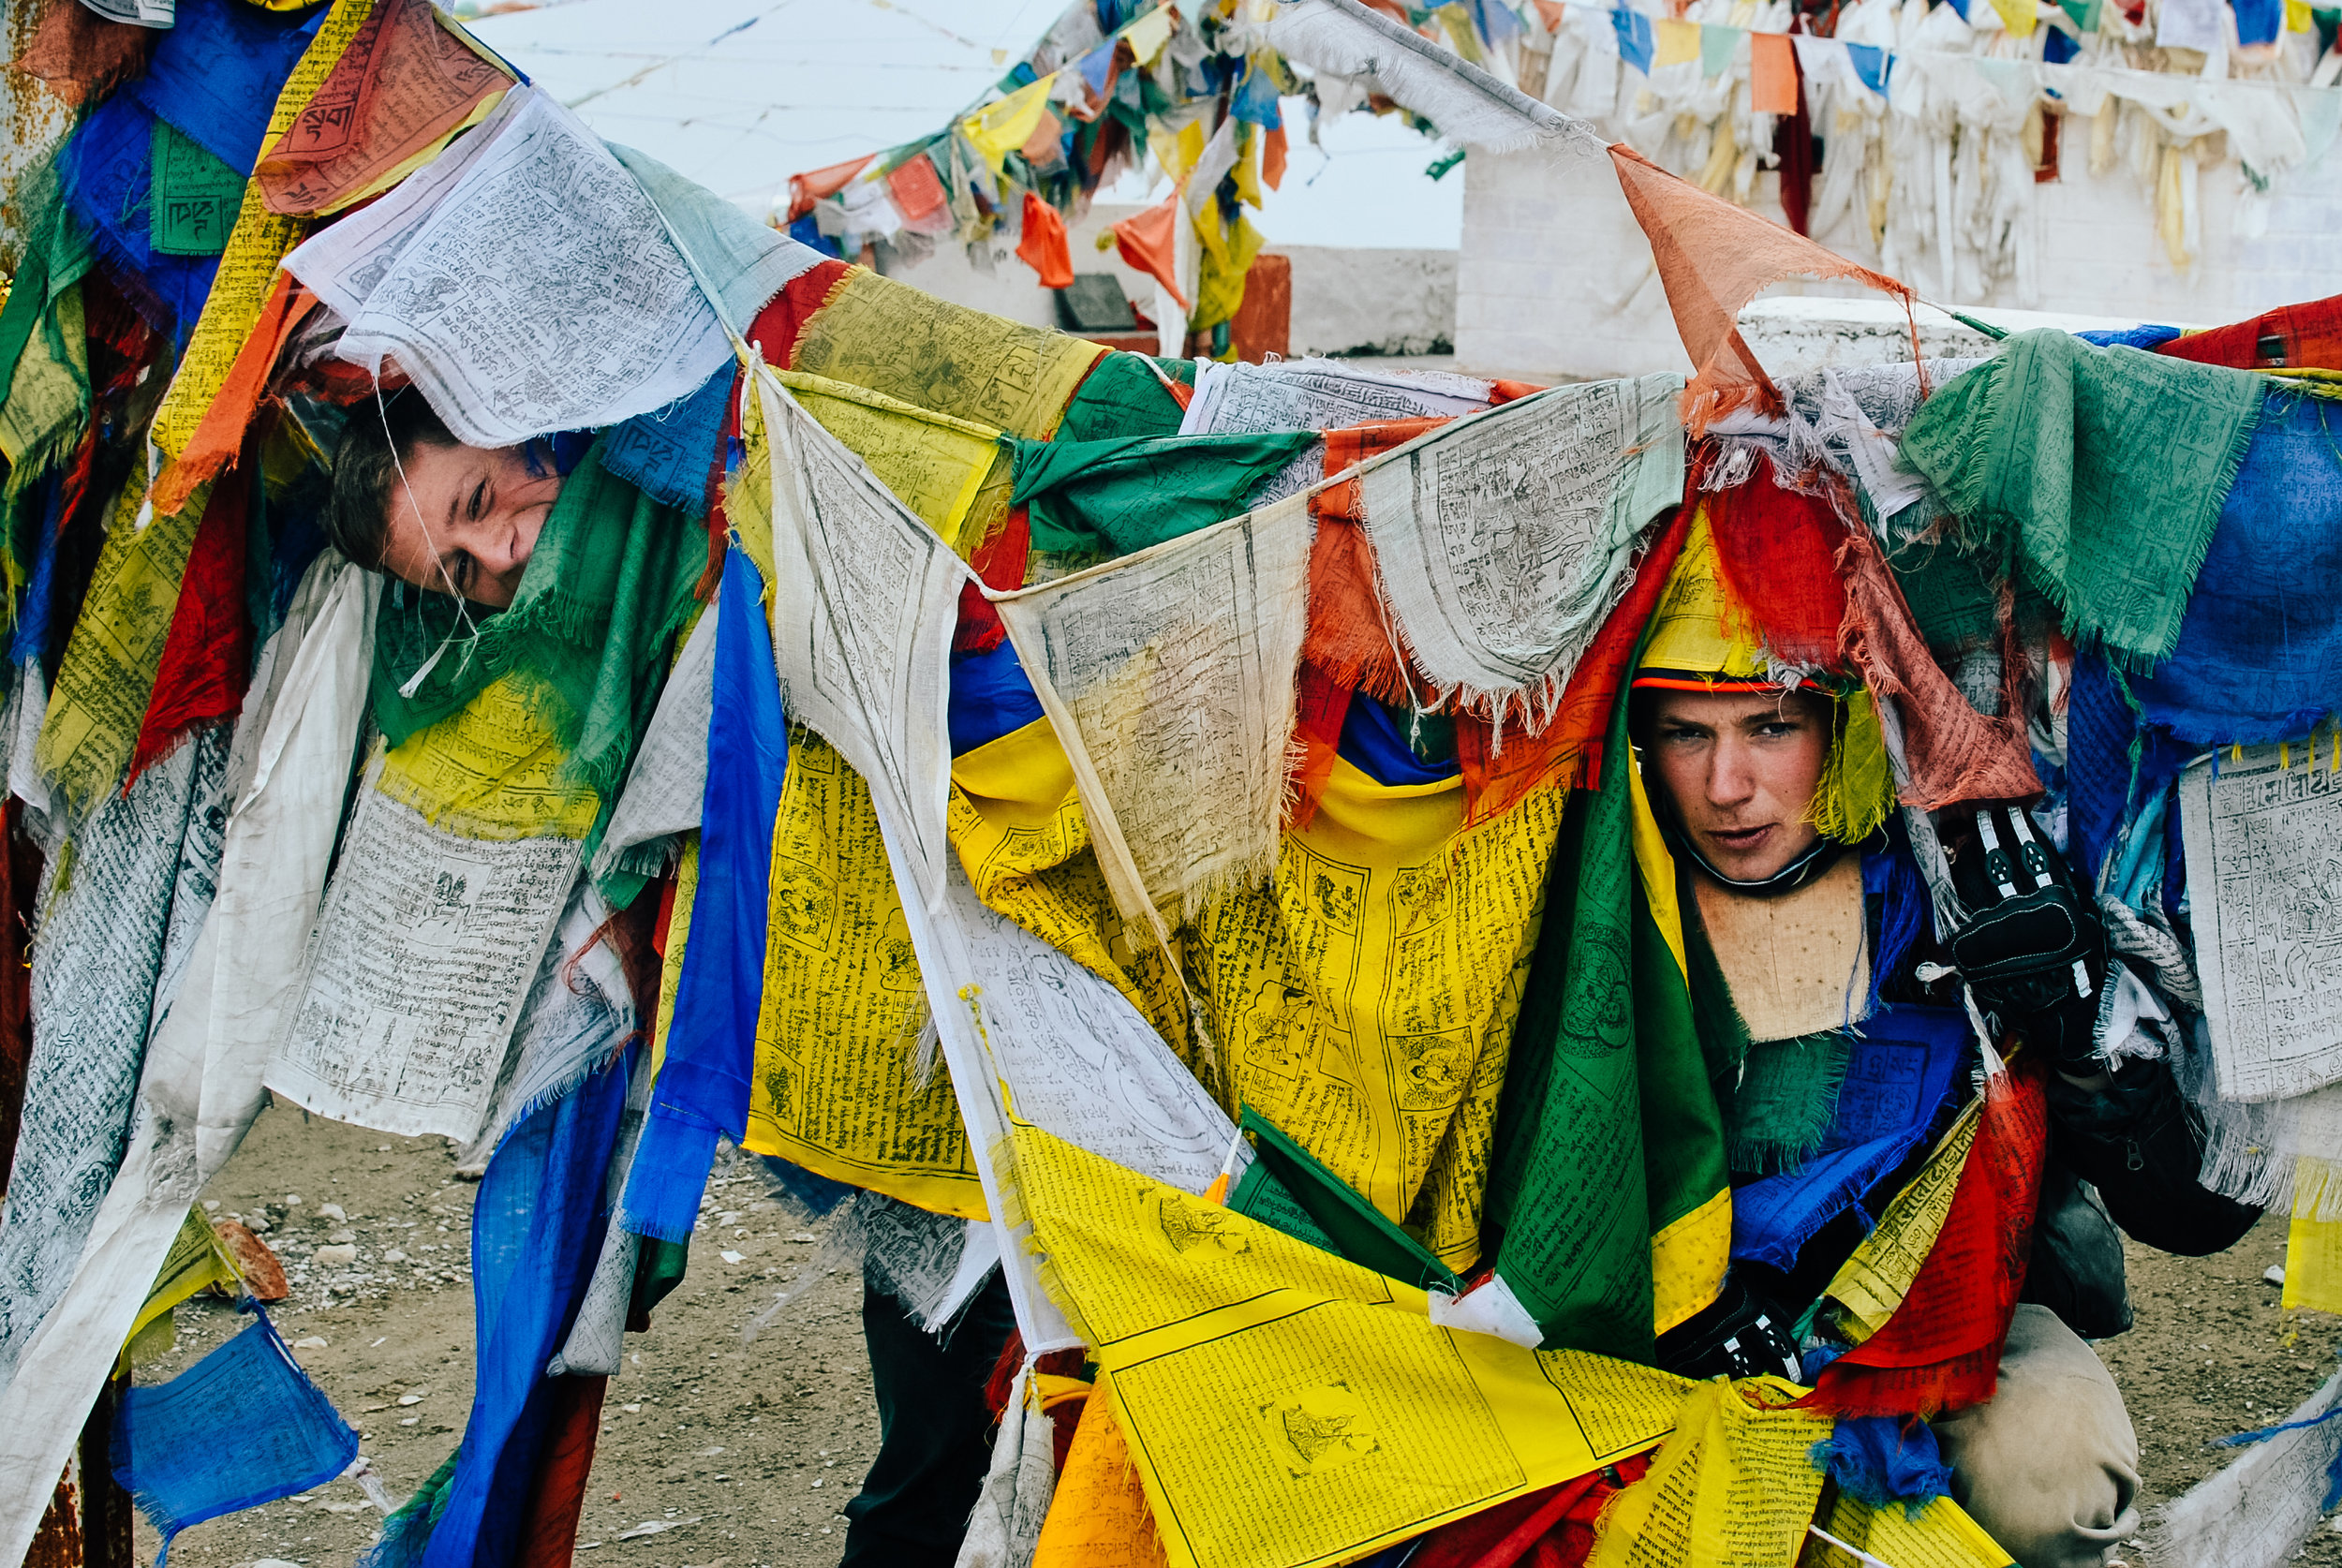 Buddhist prayer flags everywhere